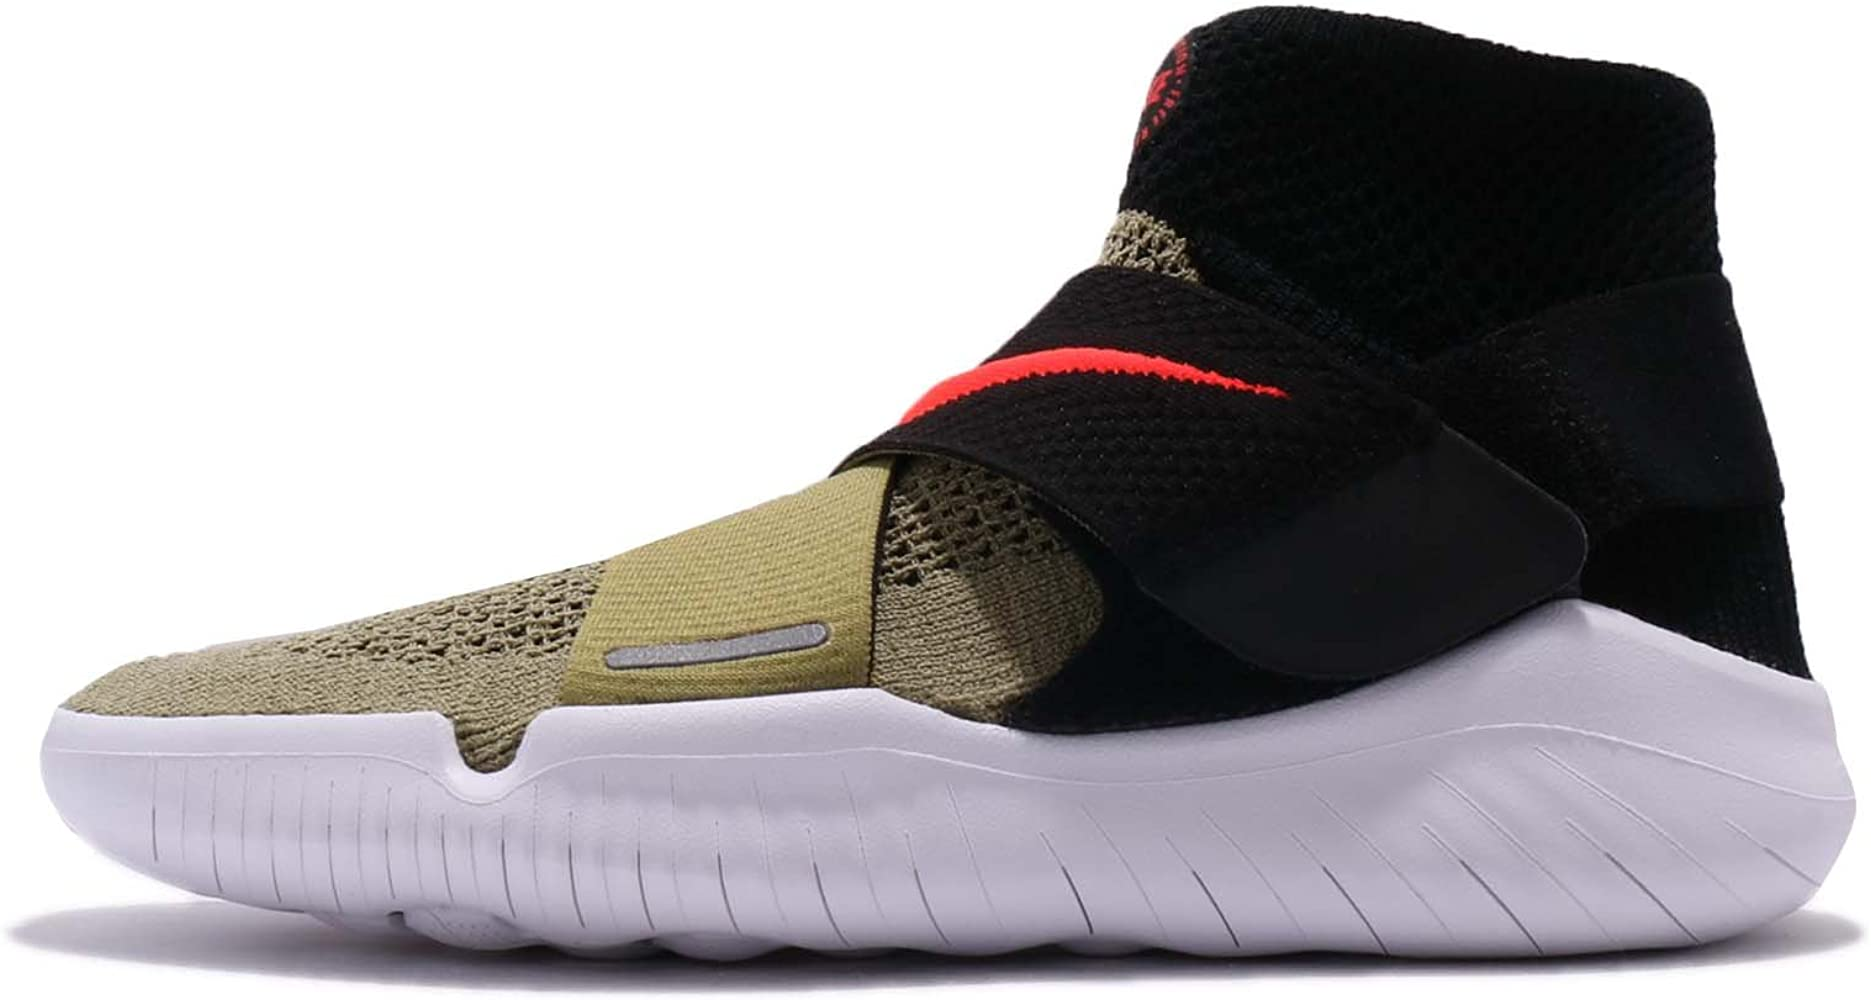 ajustar competencia Profeta  Amazon.com | Nike Free RN Motion FK 2018 Mens Running Trainers 942840  Sneakers Shoes (UK 7.5 US 8.5 EU 42, Neutral Olive Bright Crimson 200) |  Shoes